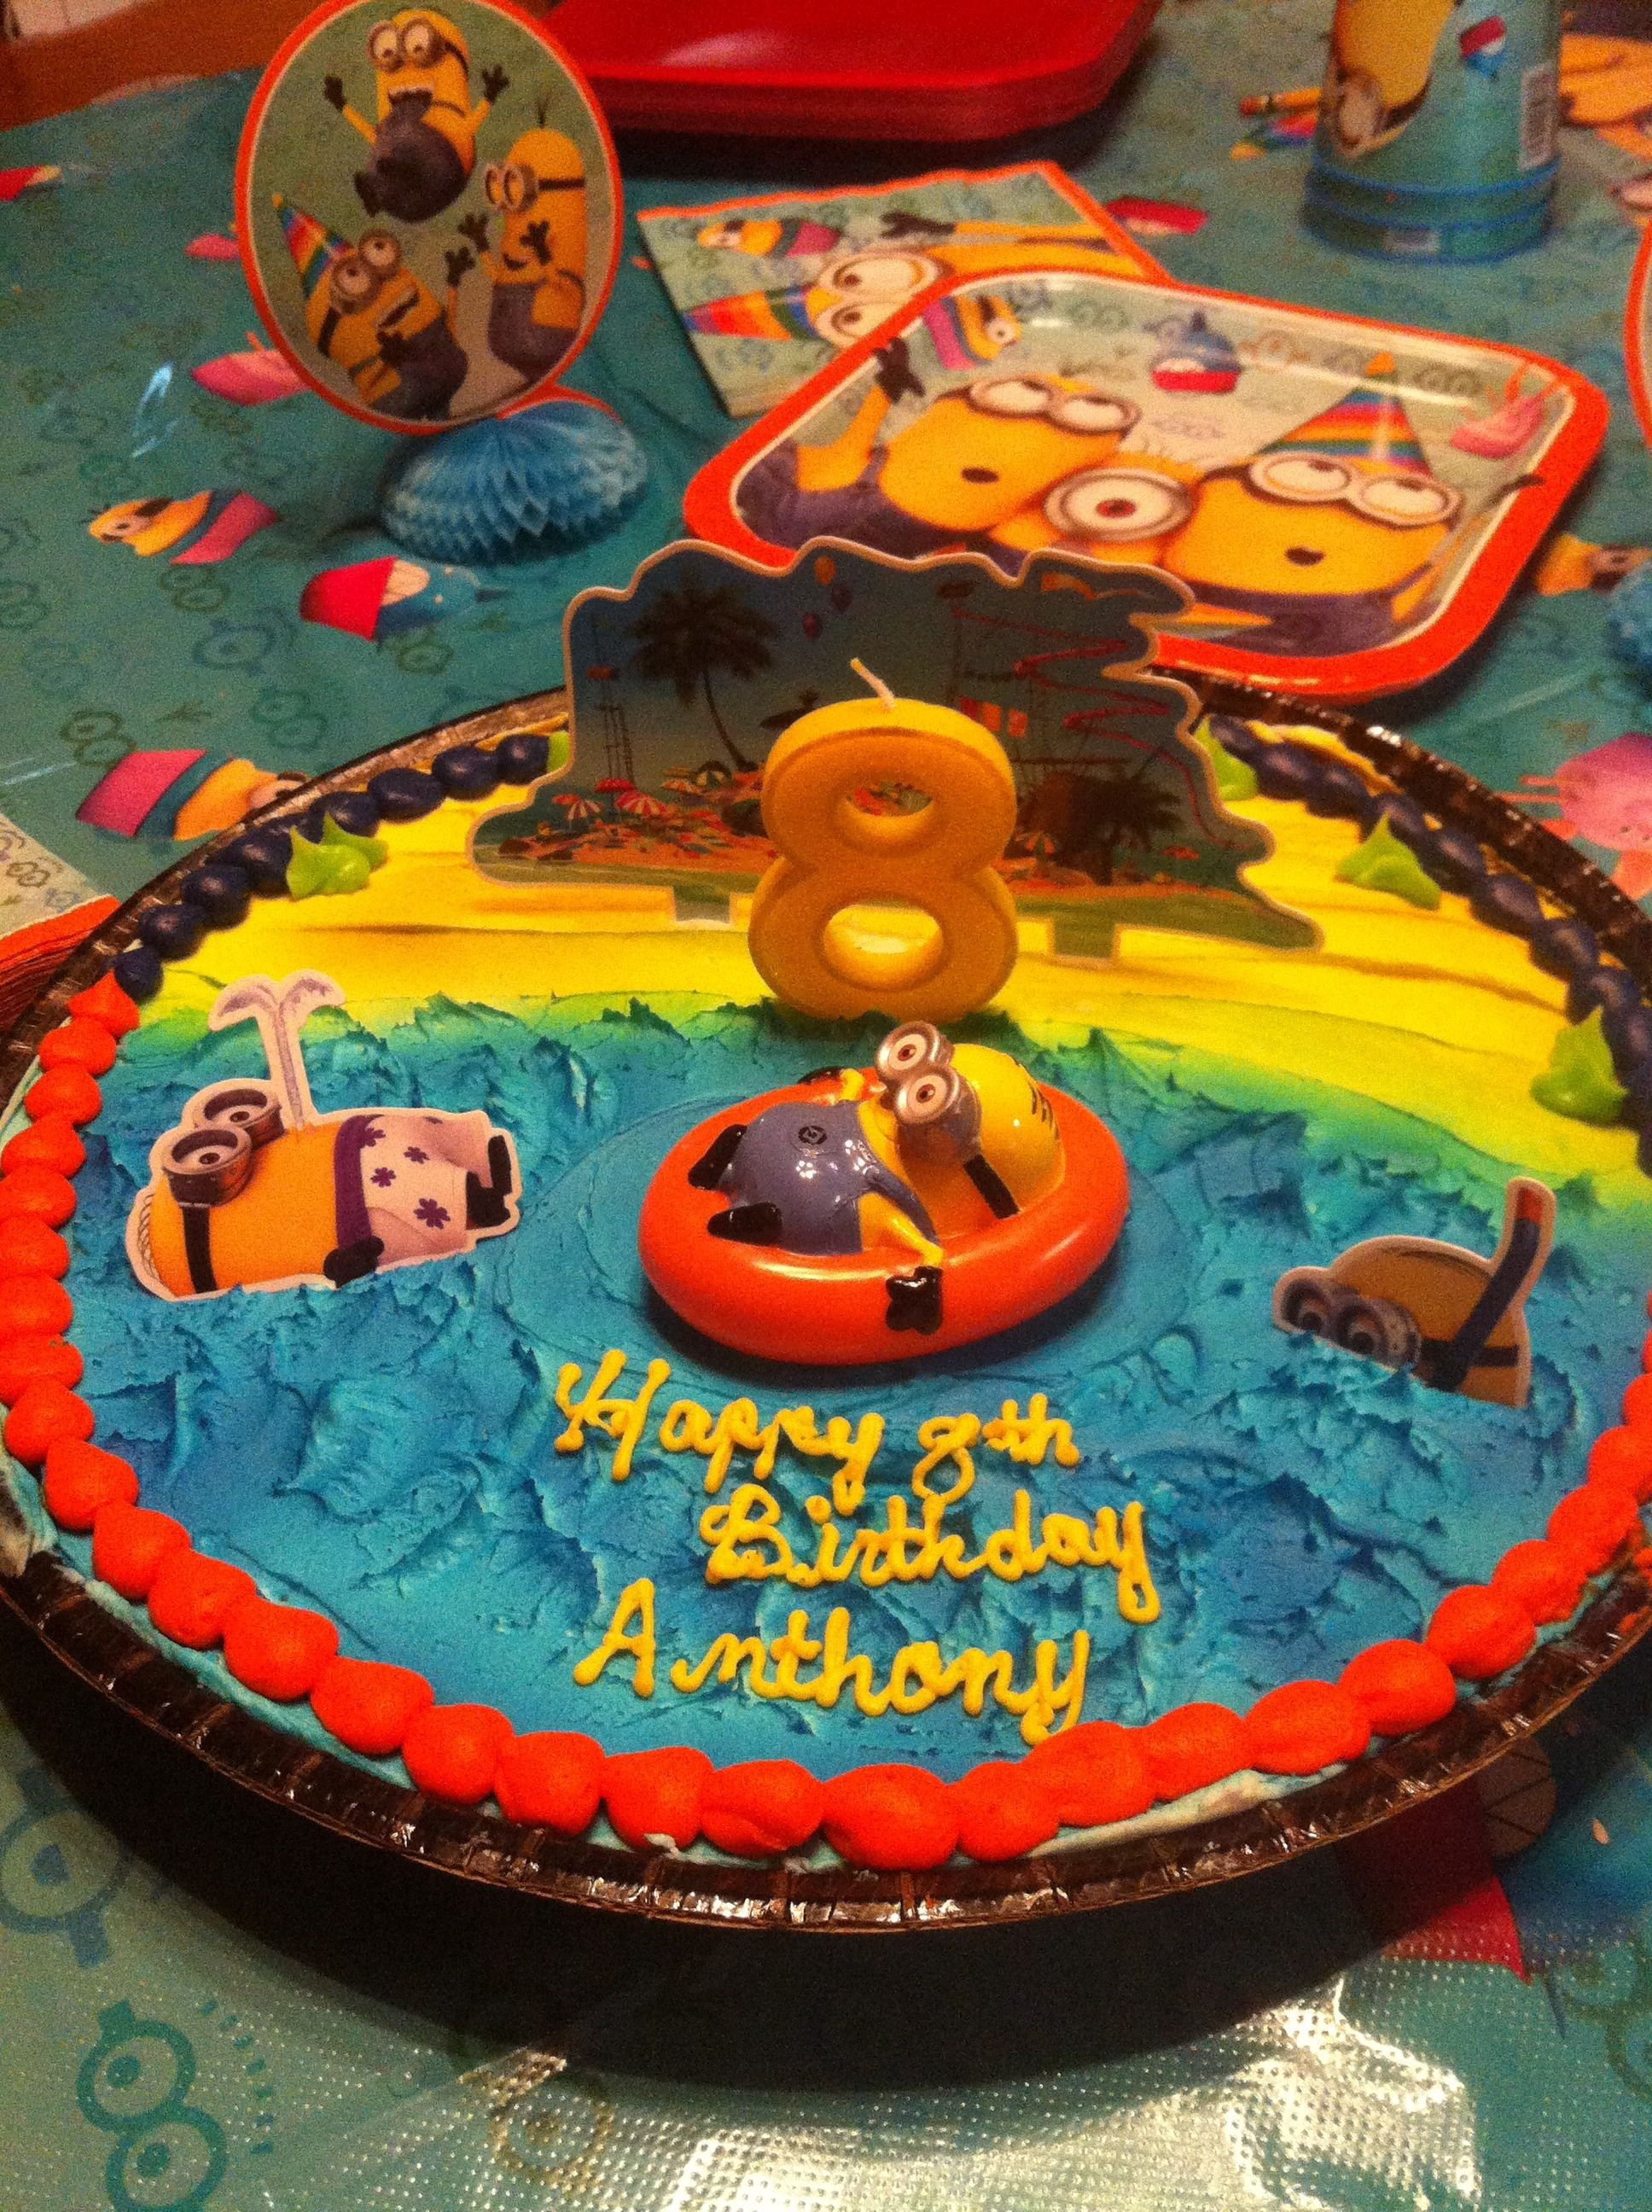 23 Brilliant Image Of Elmo Birthday Cakes At Walmart Minion Cookie Cake We Took The Decoration From And Put